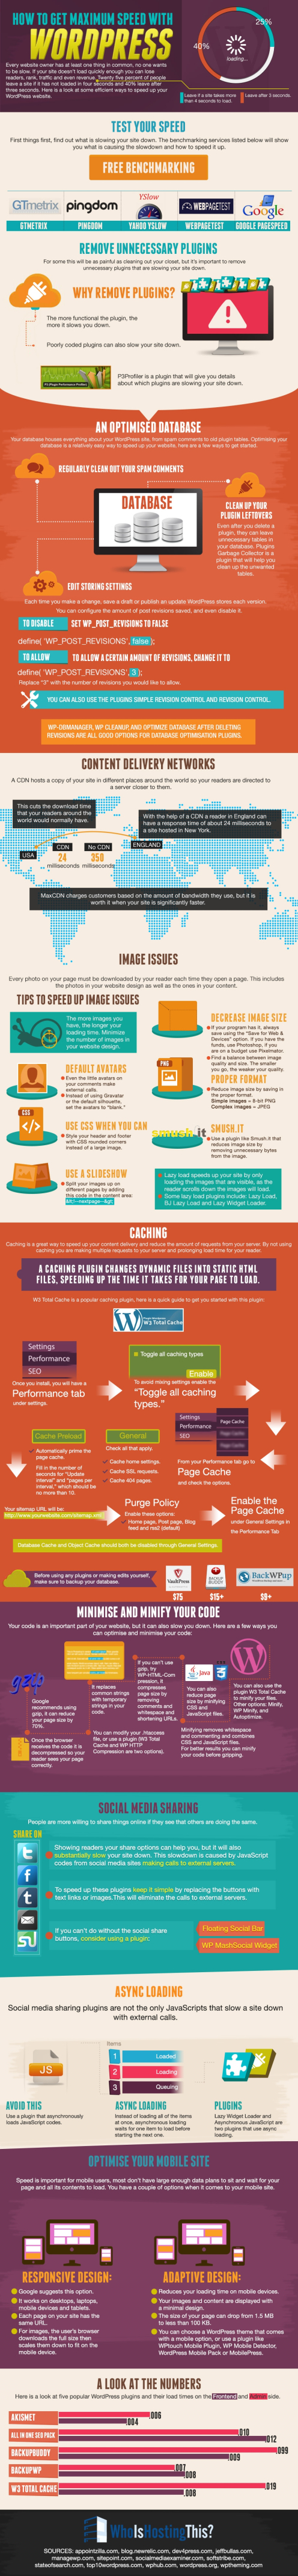 Speed-up-wordpress-infographic